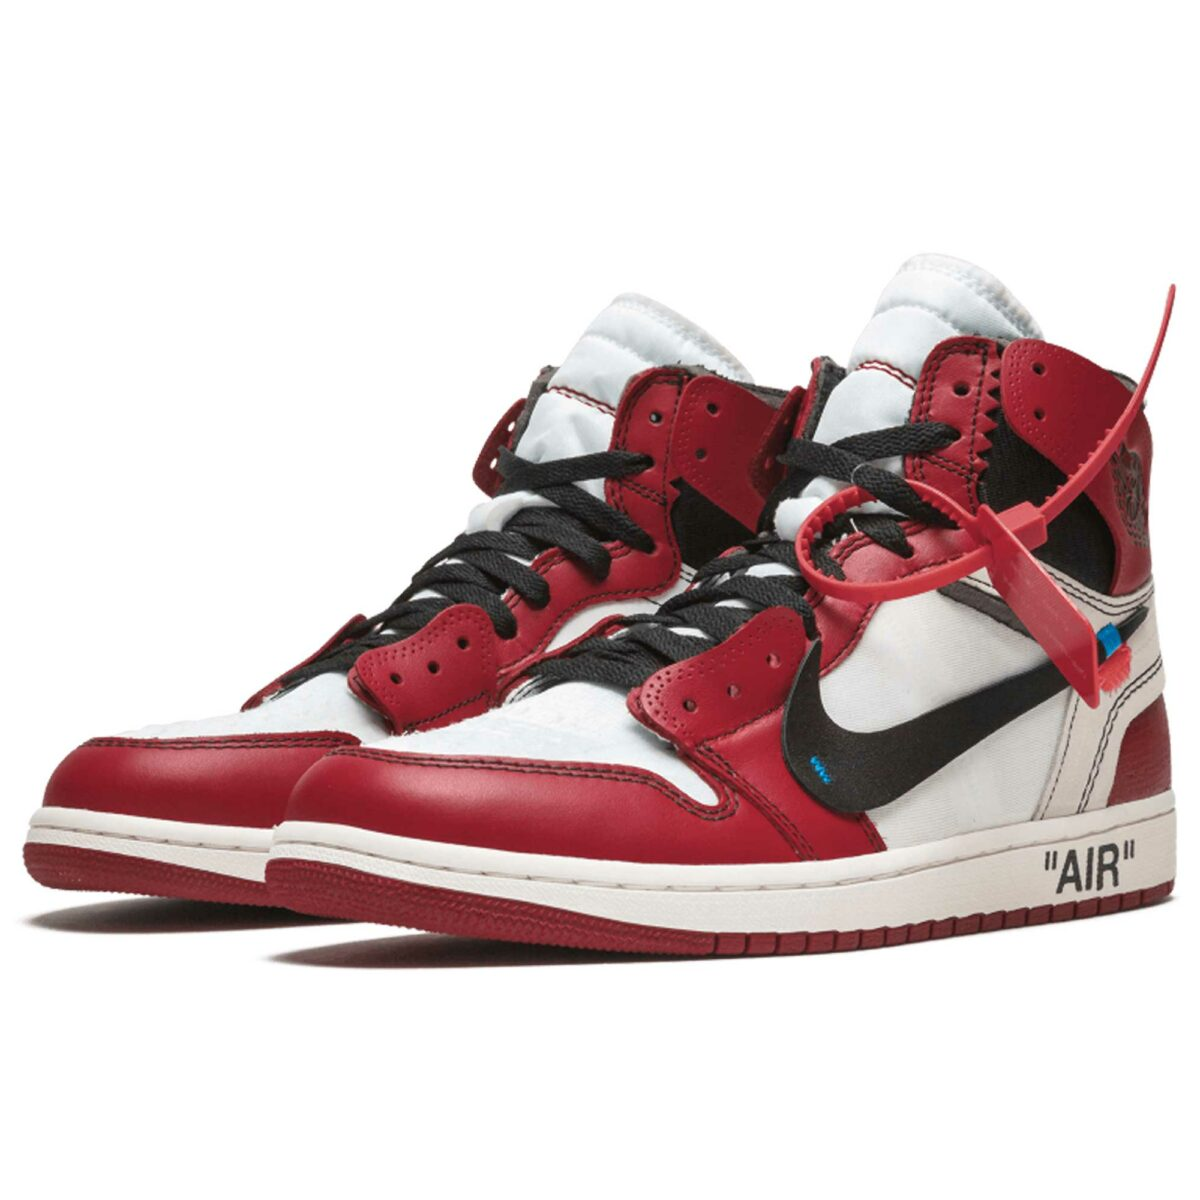 nike air Jordan 1 x off white the 10 red white aa3834_101 купить